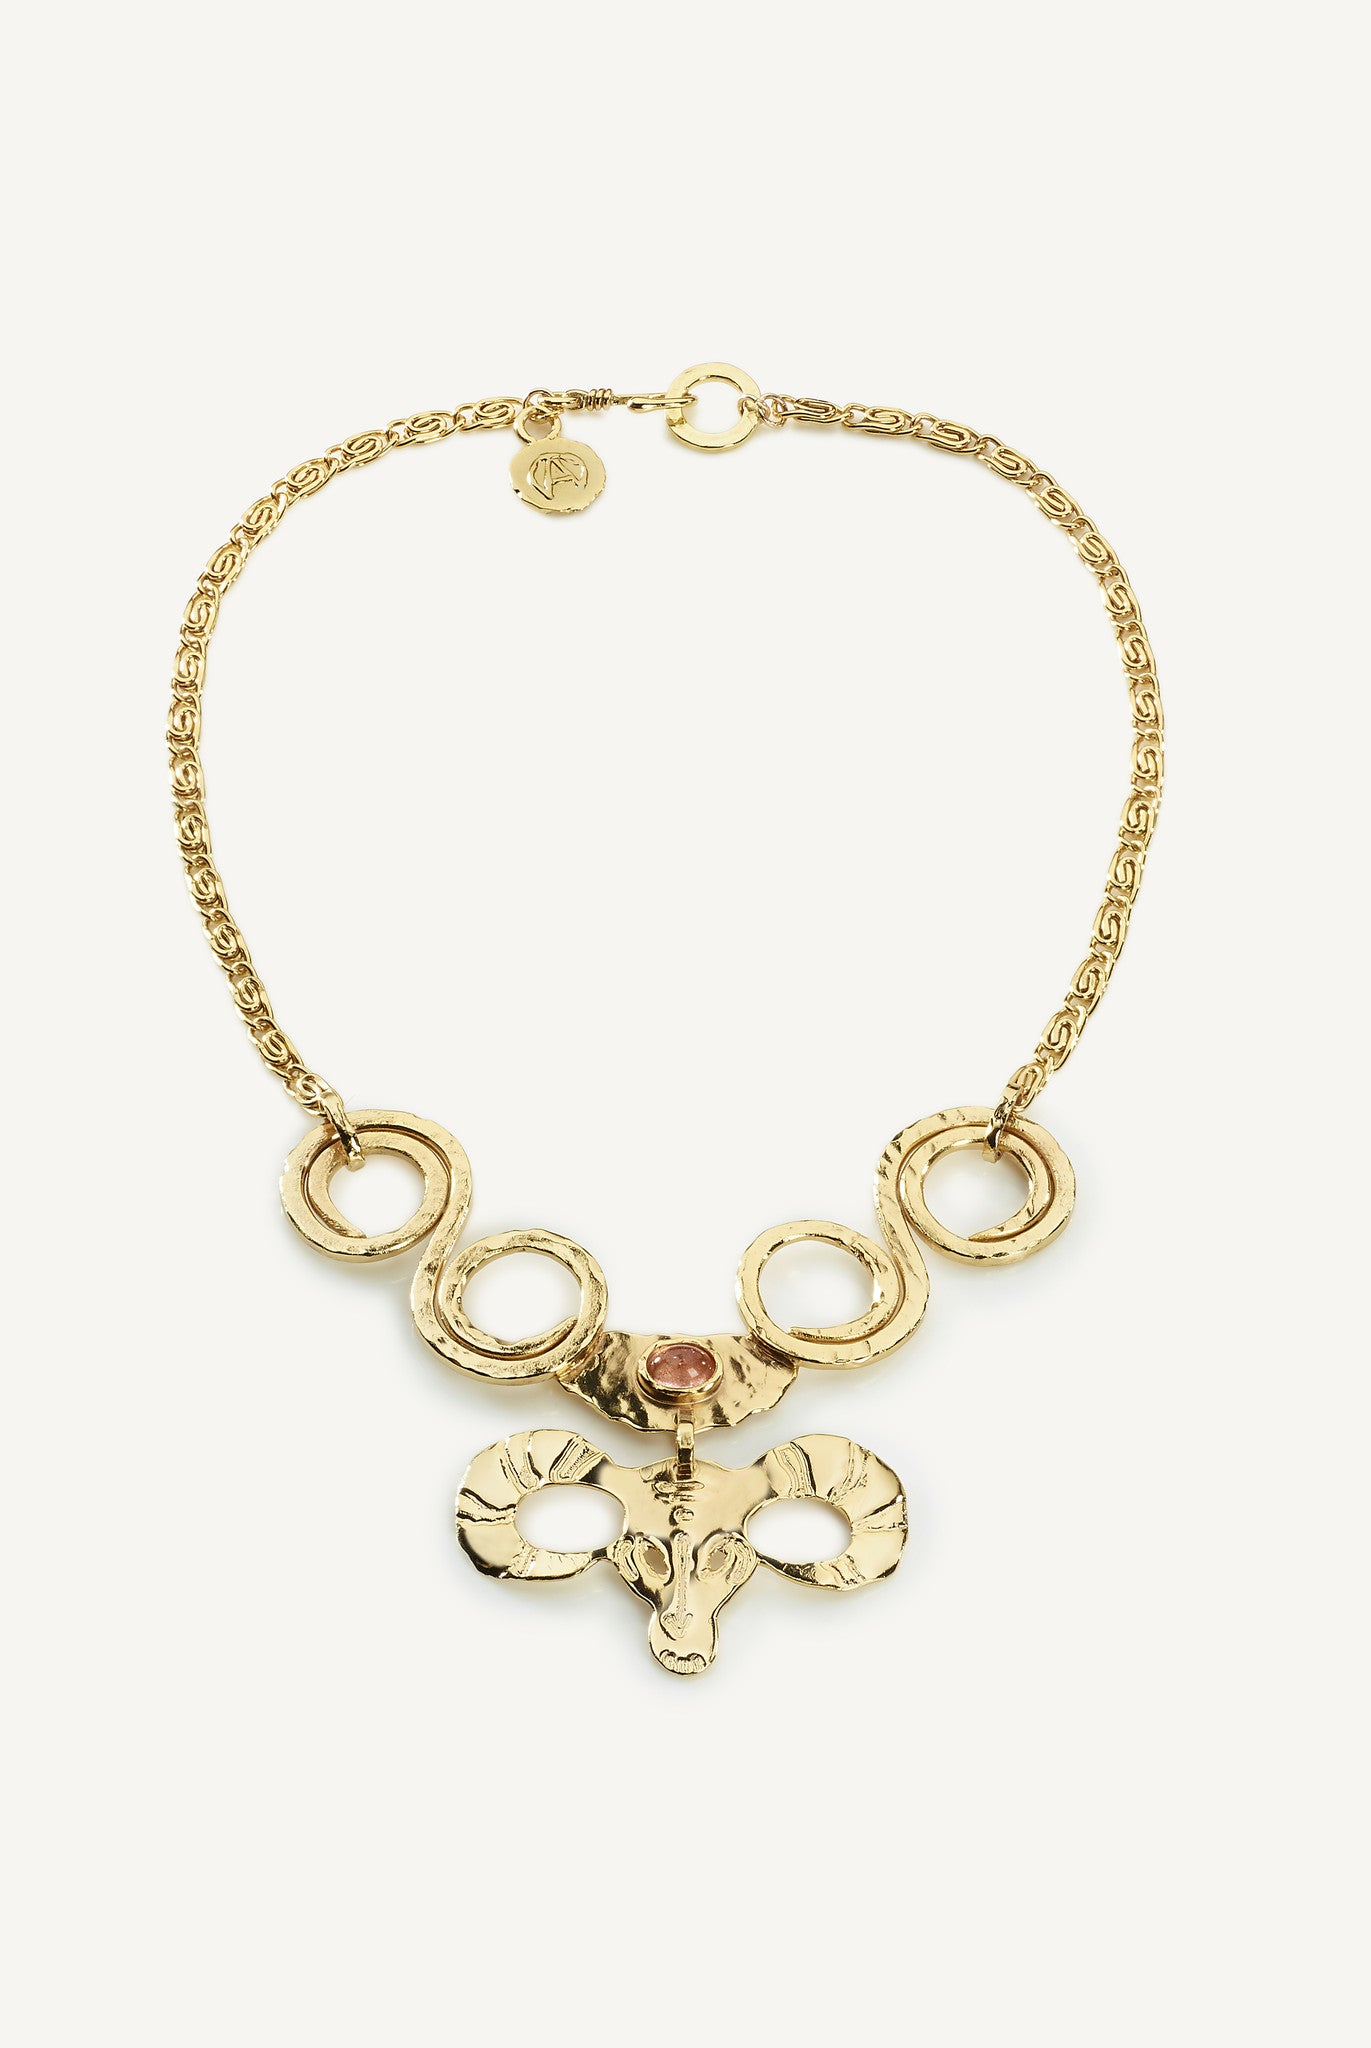 GOLDEN FLEECE NECKLACE